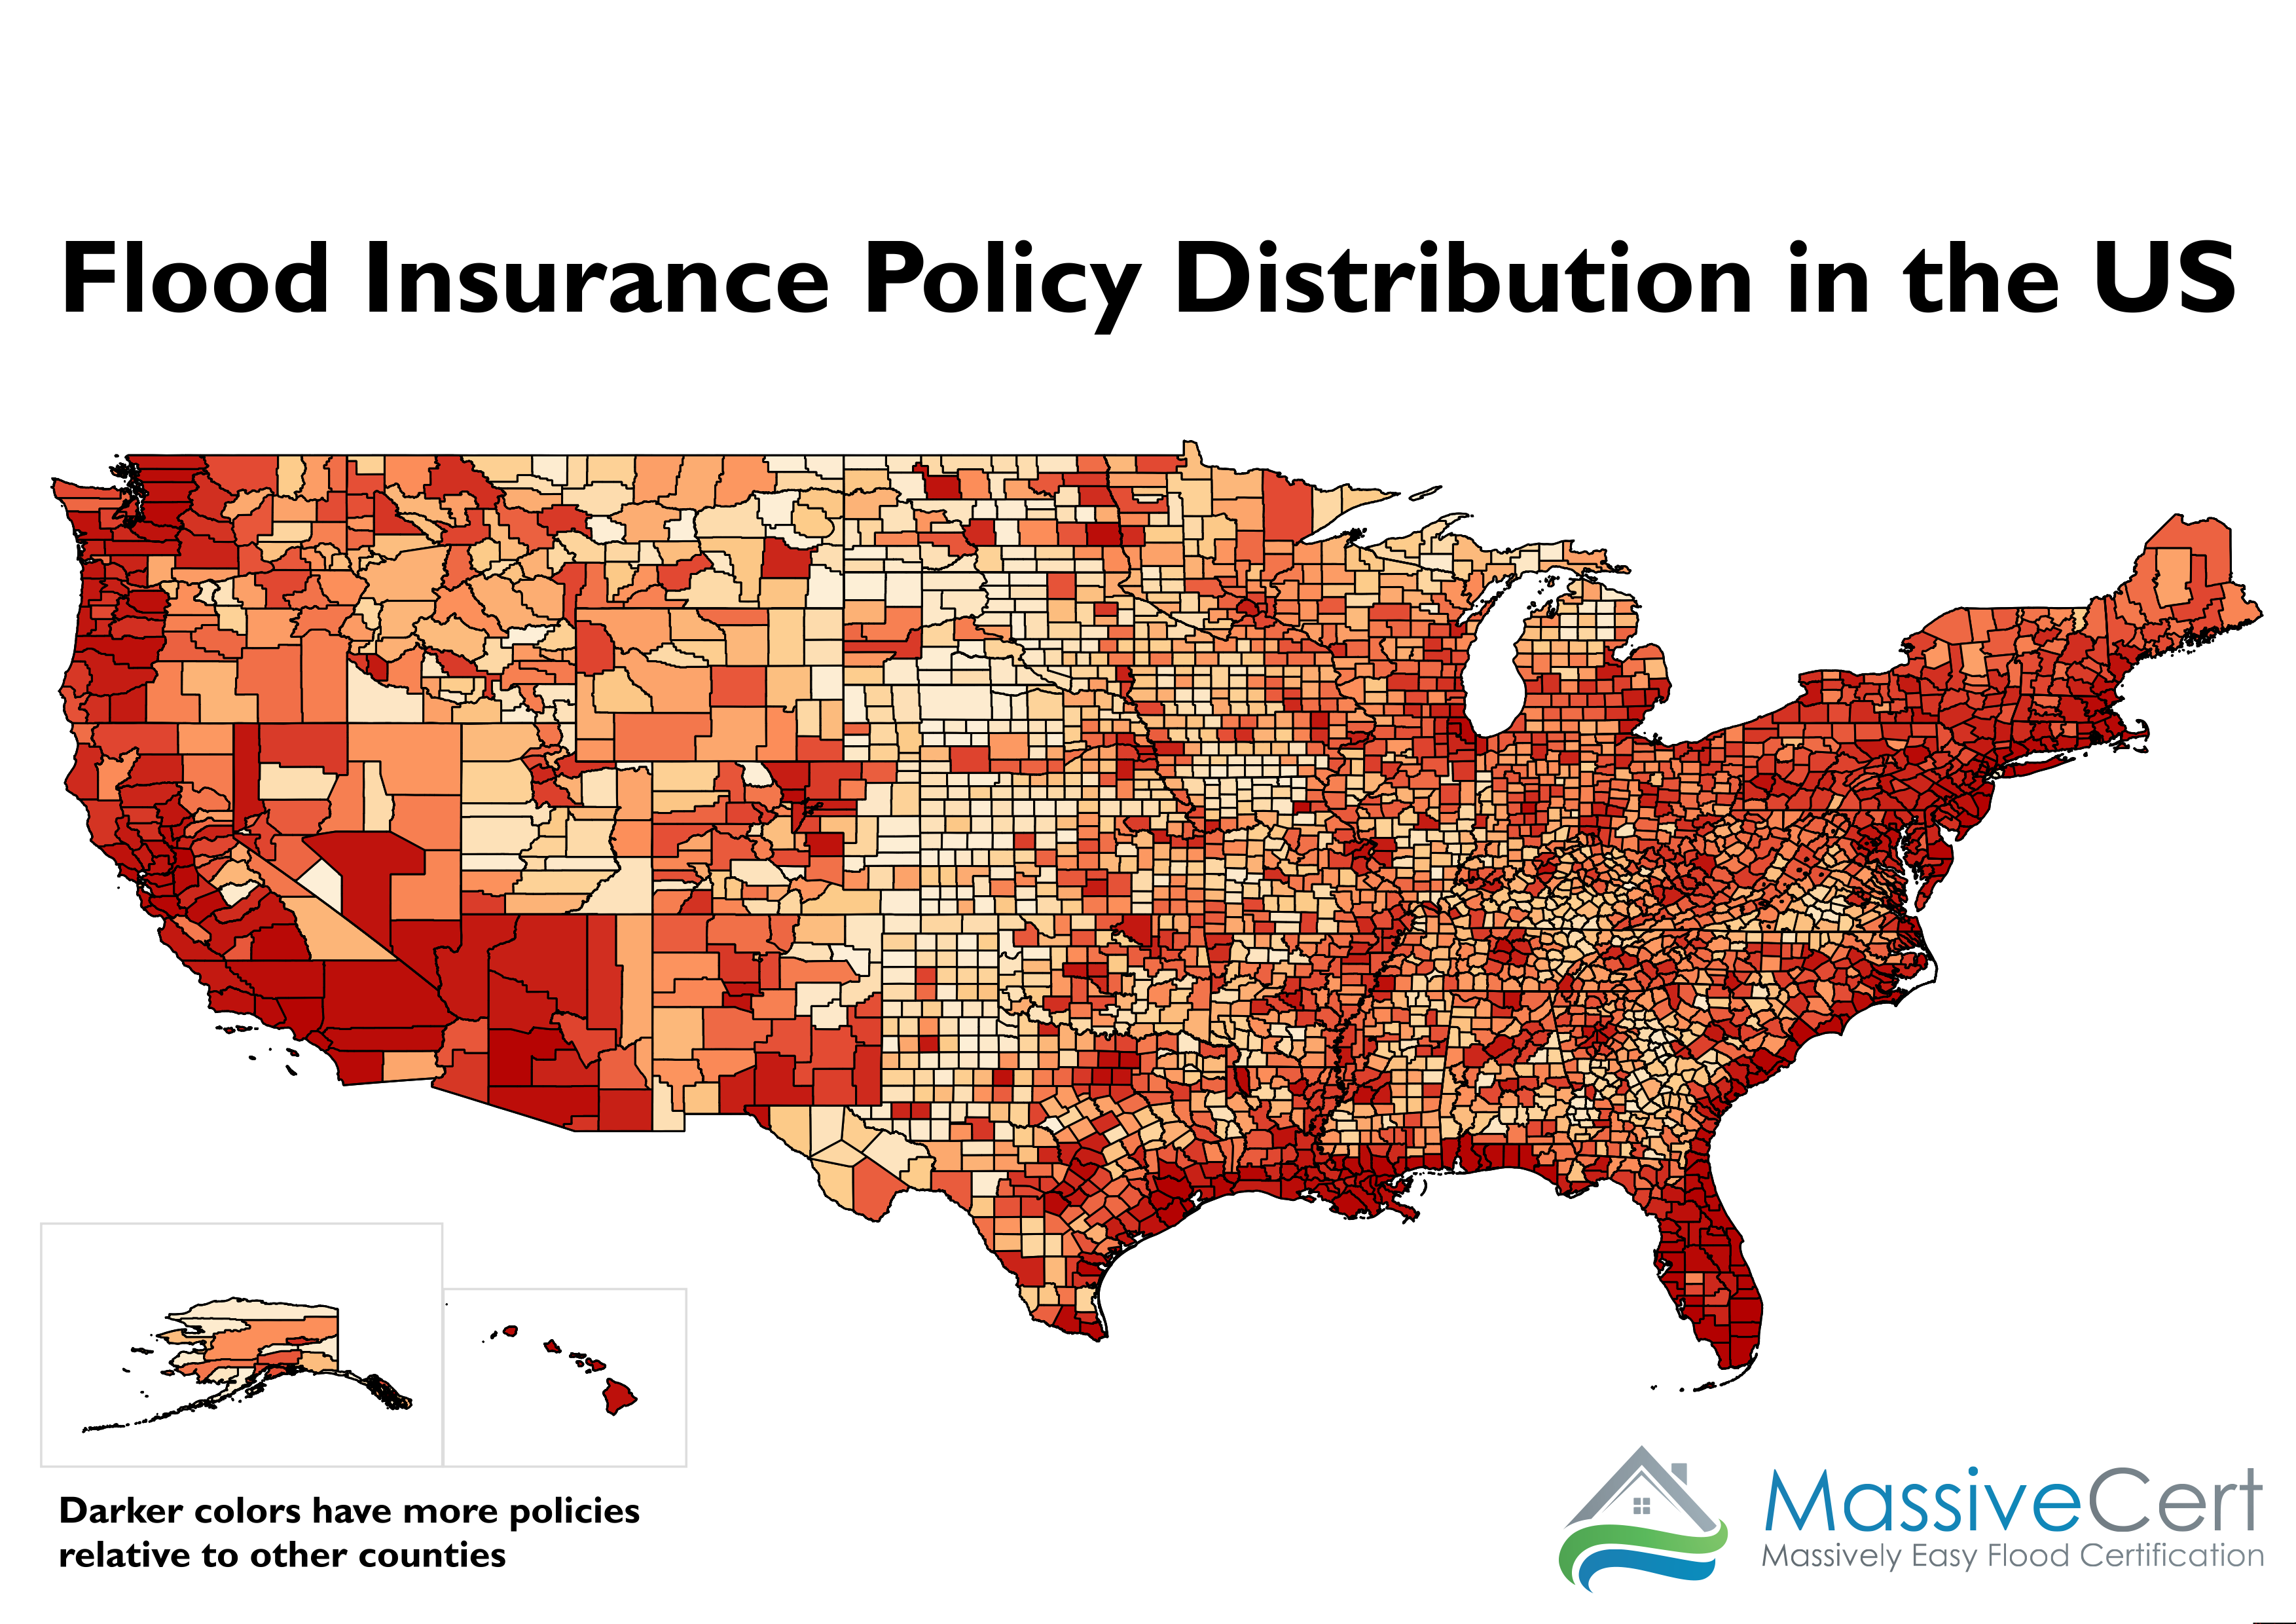 Where Are The Flood Insurance Policies In The US MassiveCert - National flood map